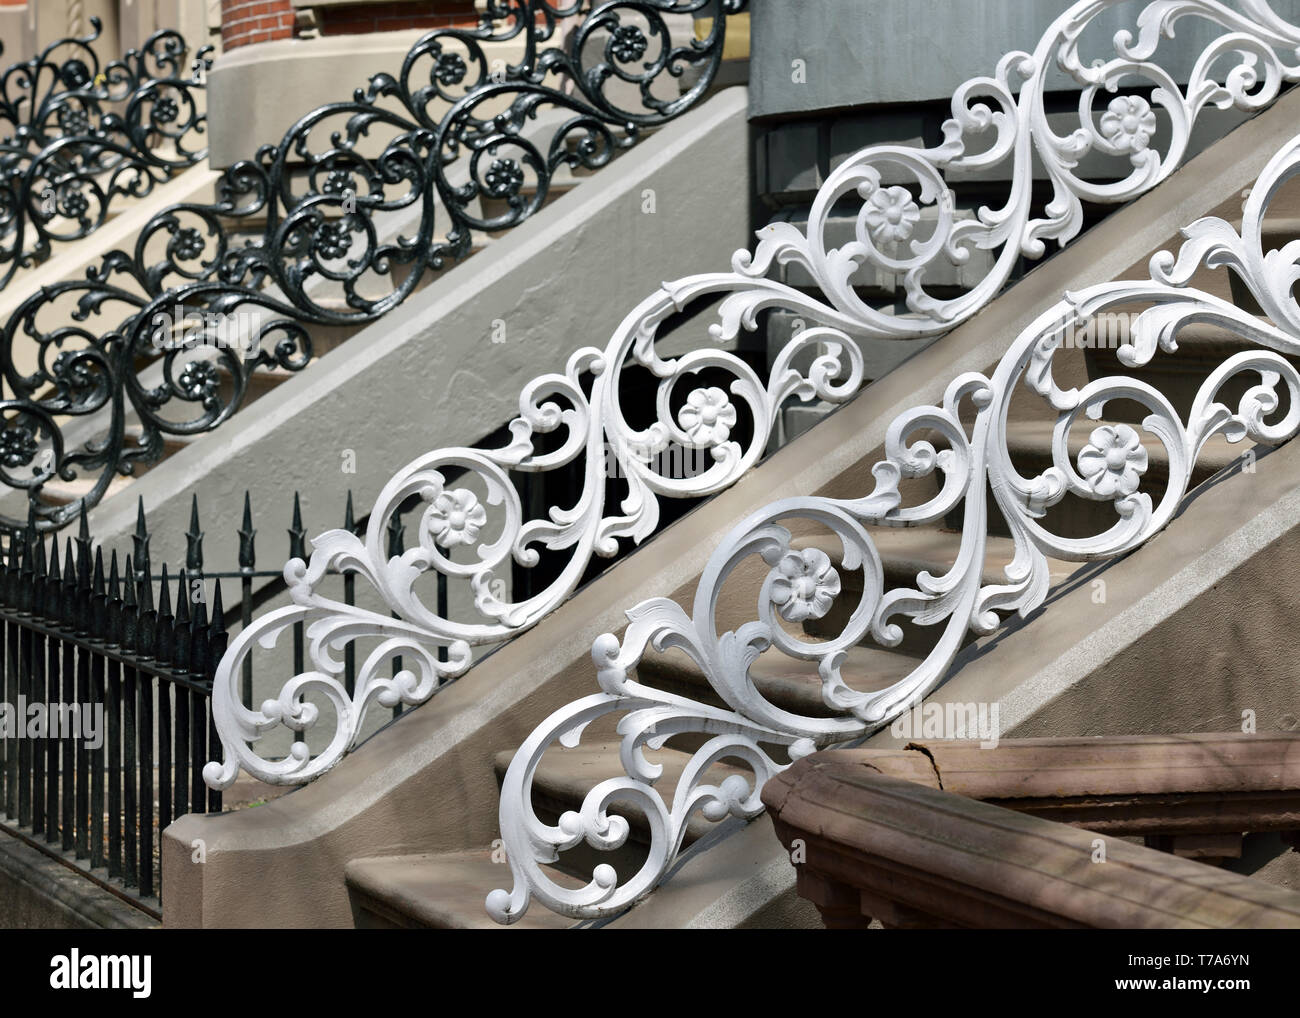 Handrails Stock Photos Amp Handrails Stock Images Alamy